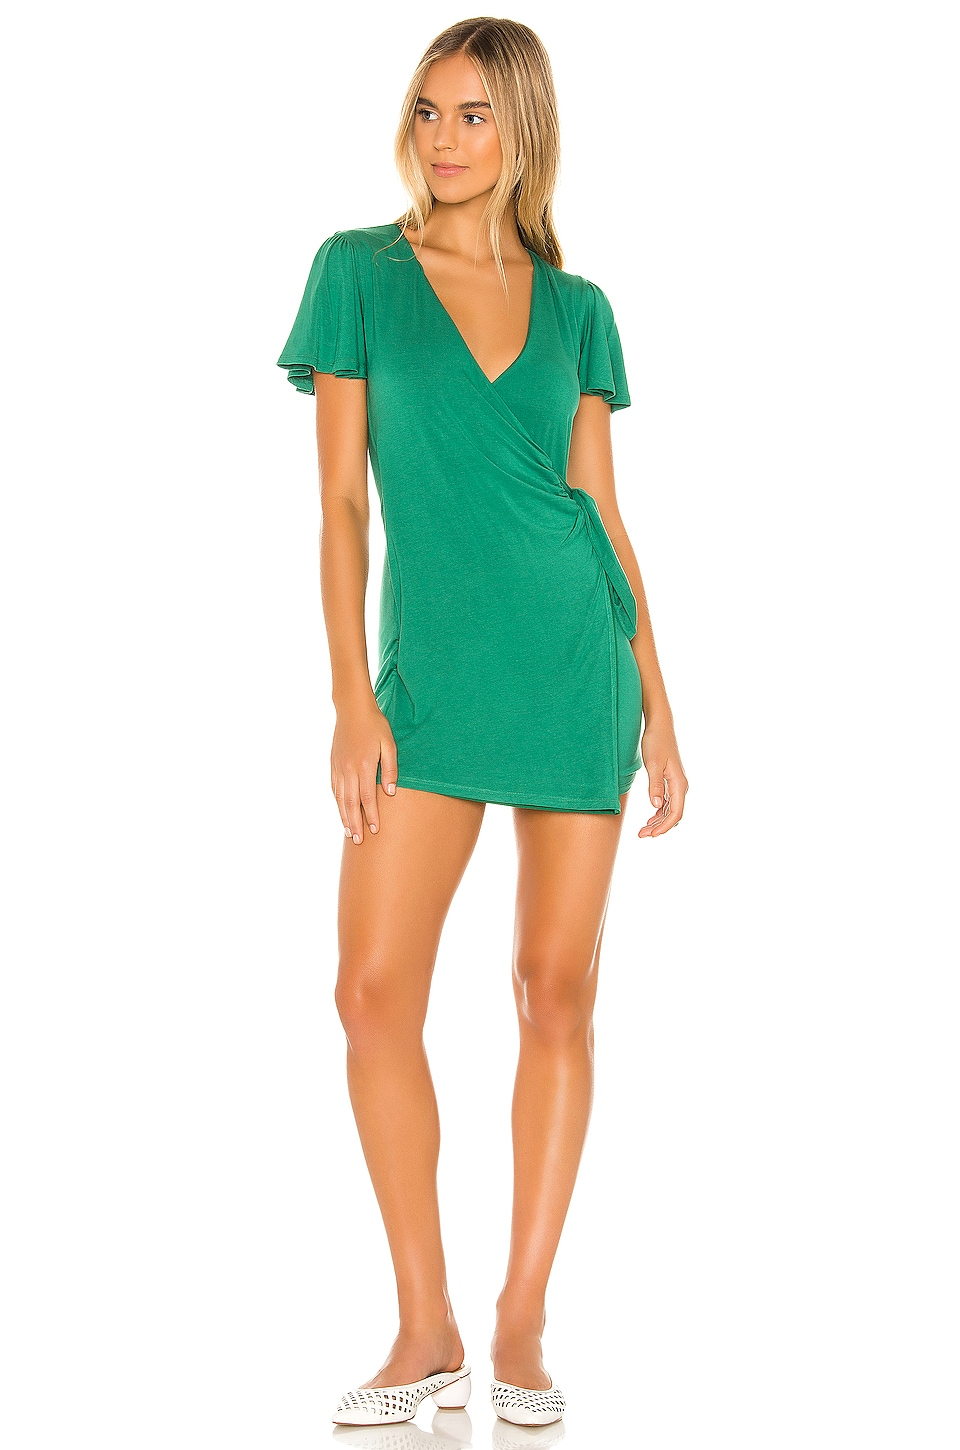 Privacy Please Jessa Mini Dress in Pine Green